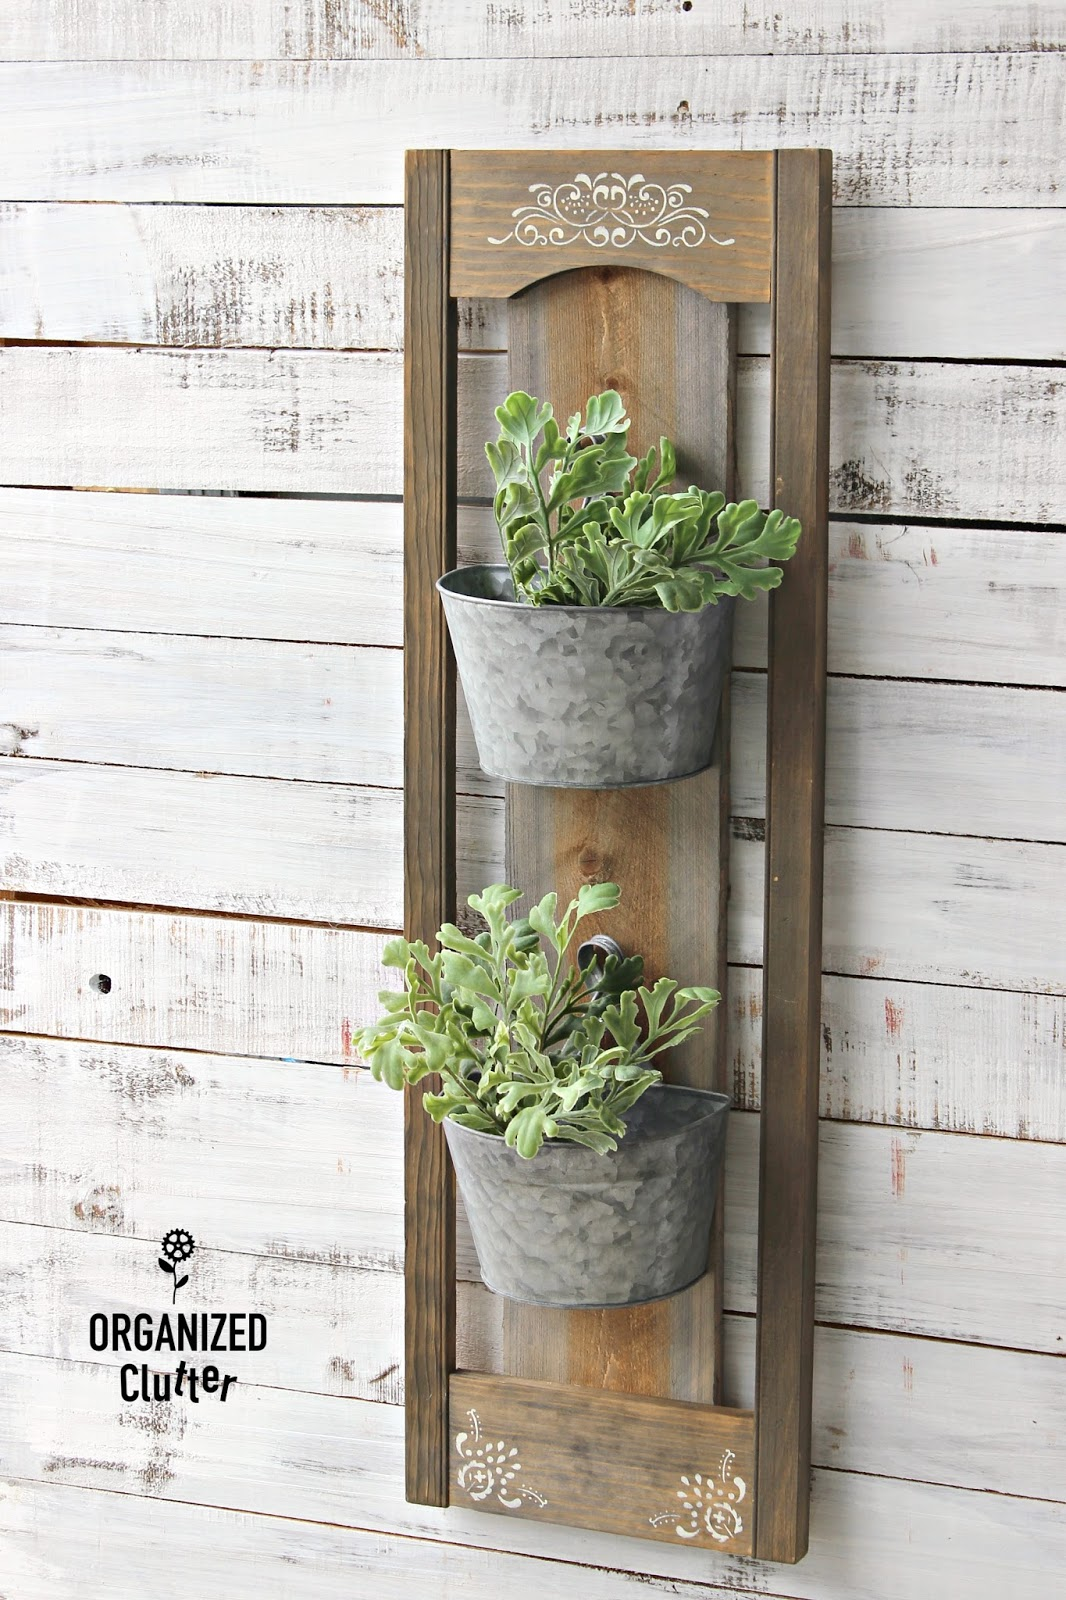 Rustic Diy Wall Planter For Inside Or Outside Organized